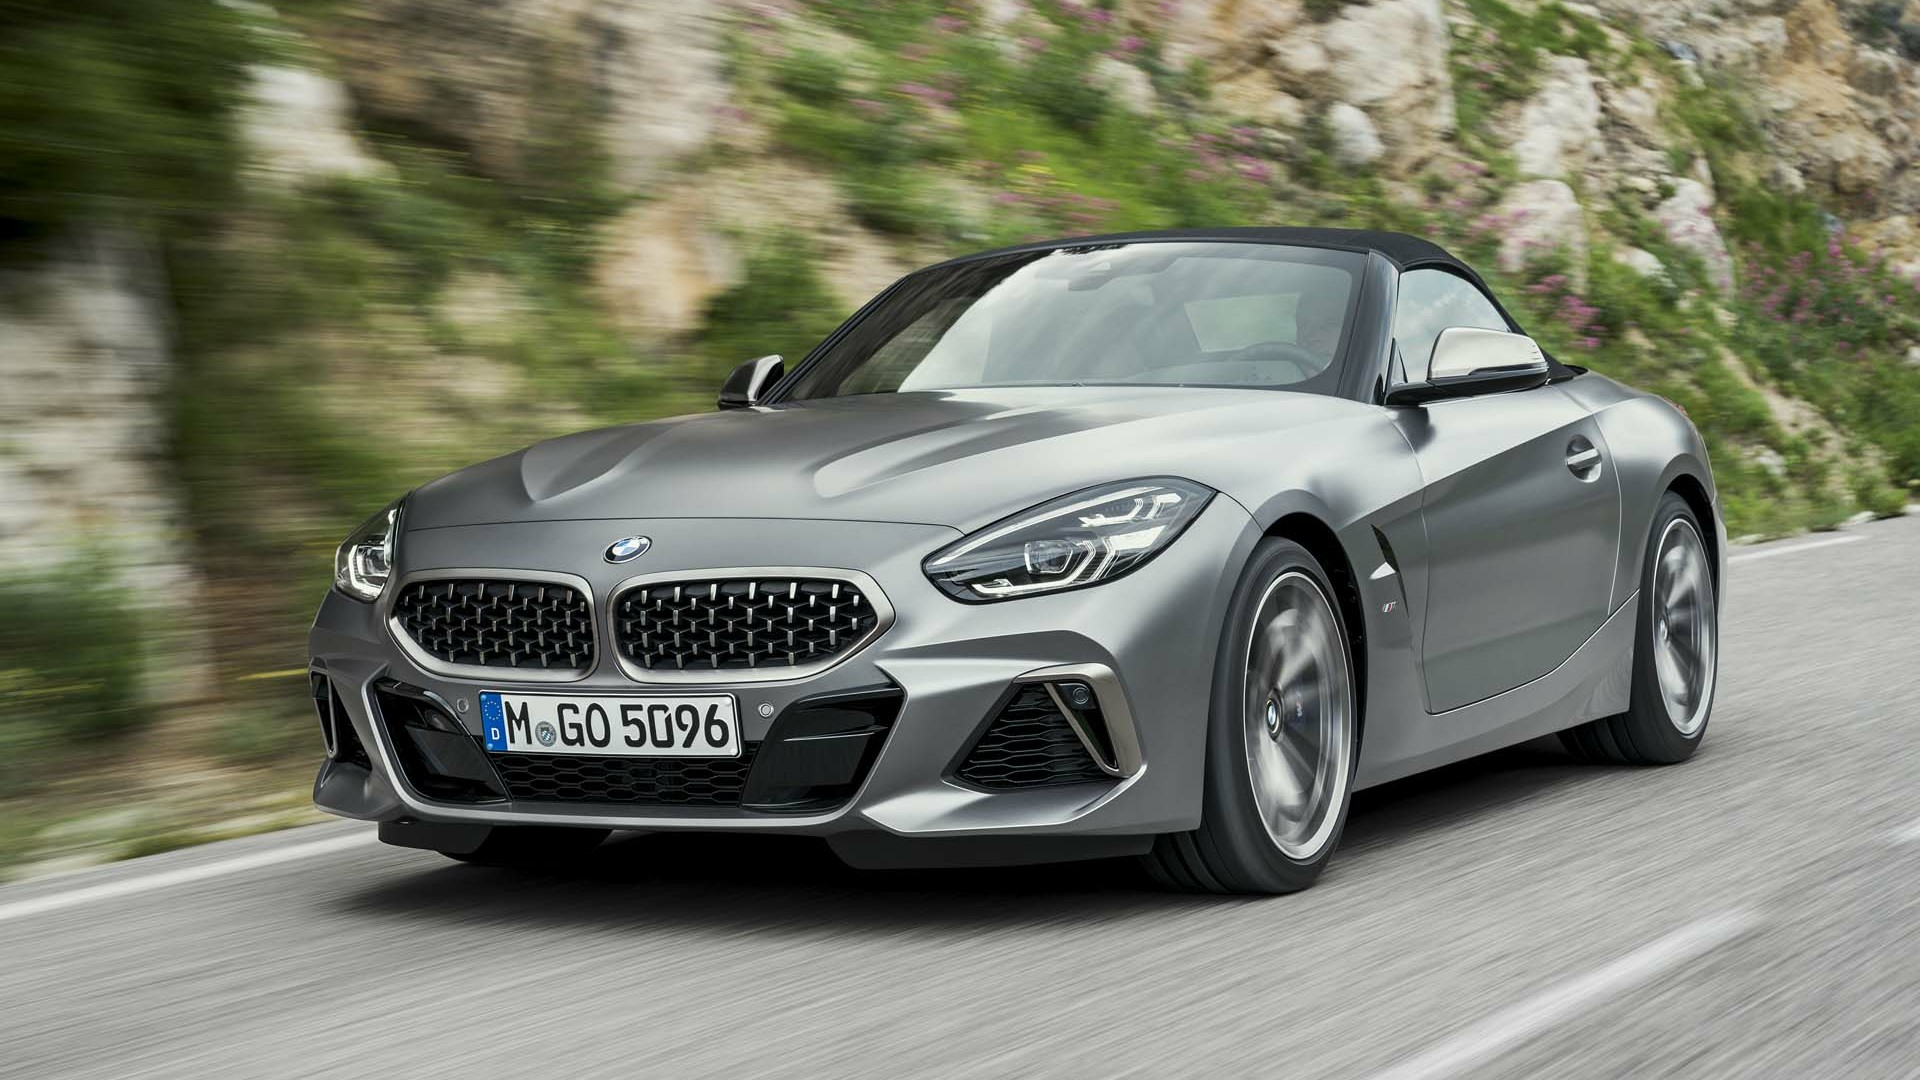 30 Best 2019 BMW Z4 Roadster Interior